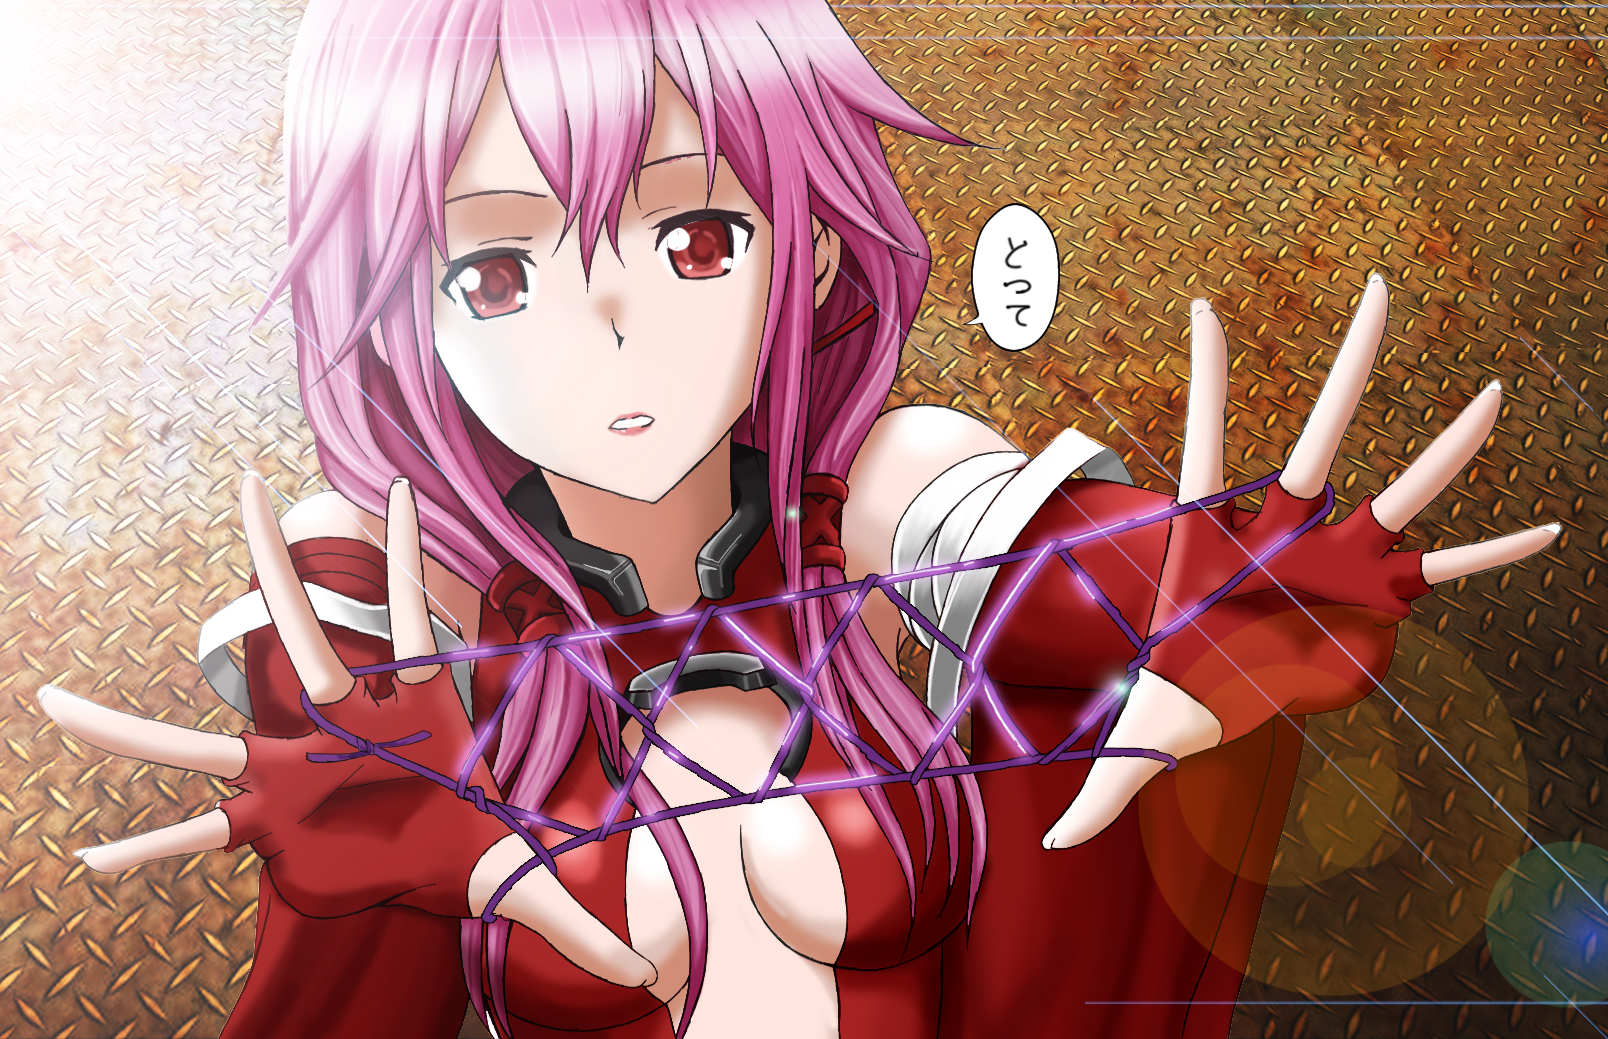 Guilty Crown Wallpaper Inori: Inori Yuzuriha Wallpaper